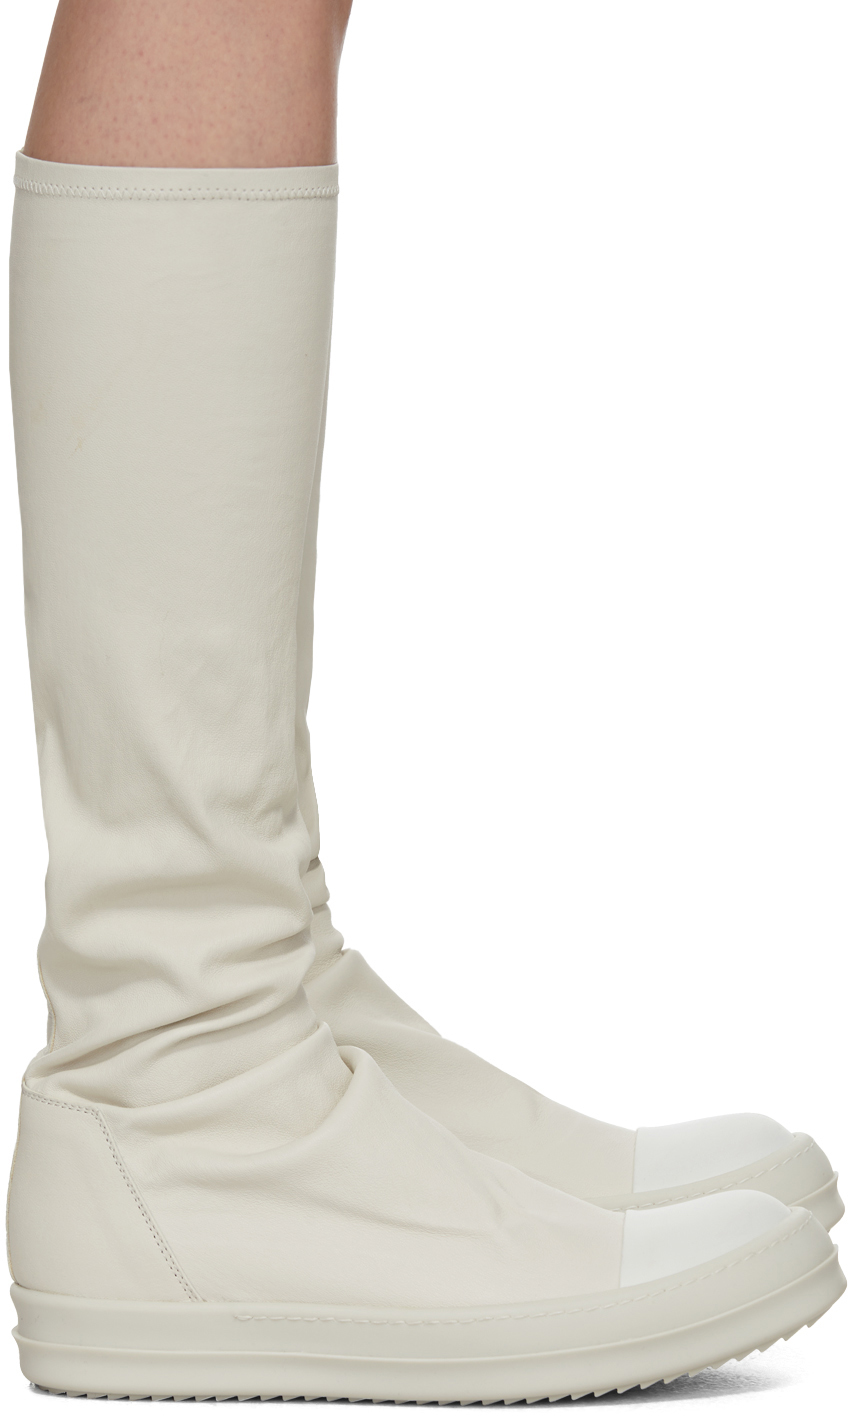 Off-White Sock Boots by Rick Owens on Sale